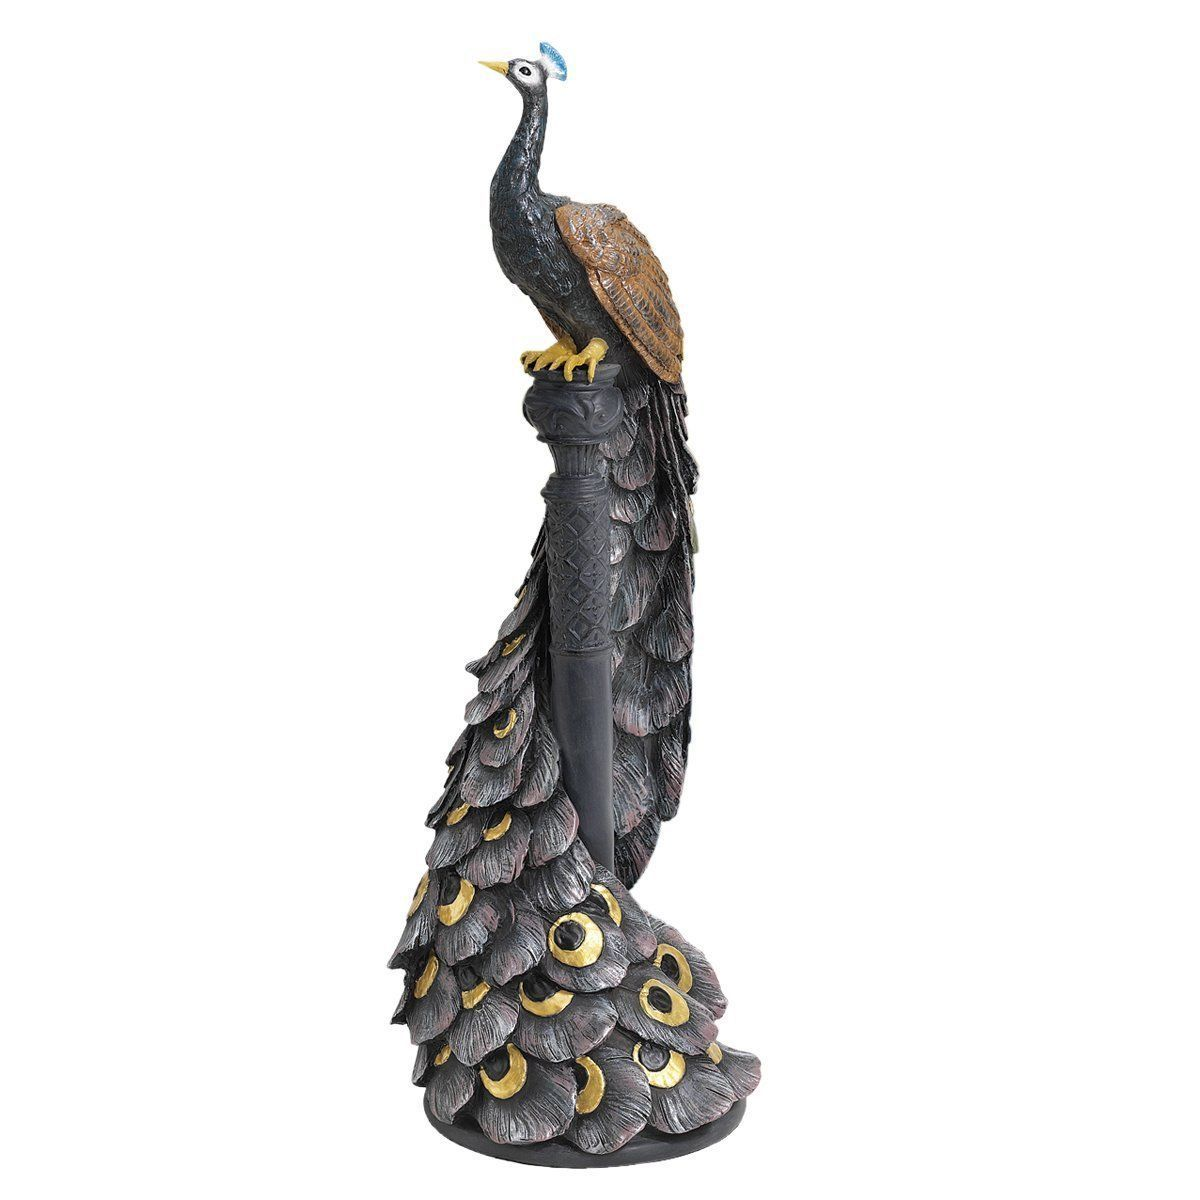 PERCH PEACOCK BIRD STATUE SCULPTURE Mom Wife Gift Zen Art Patio Porch Balcony